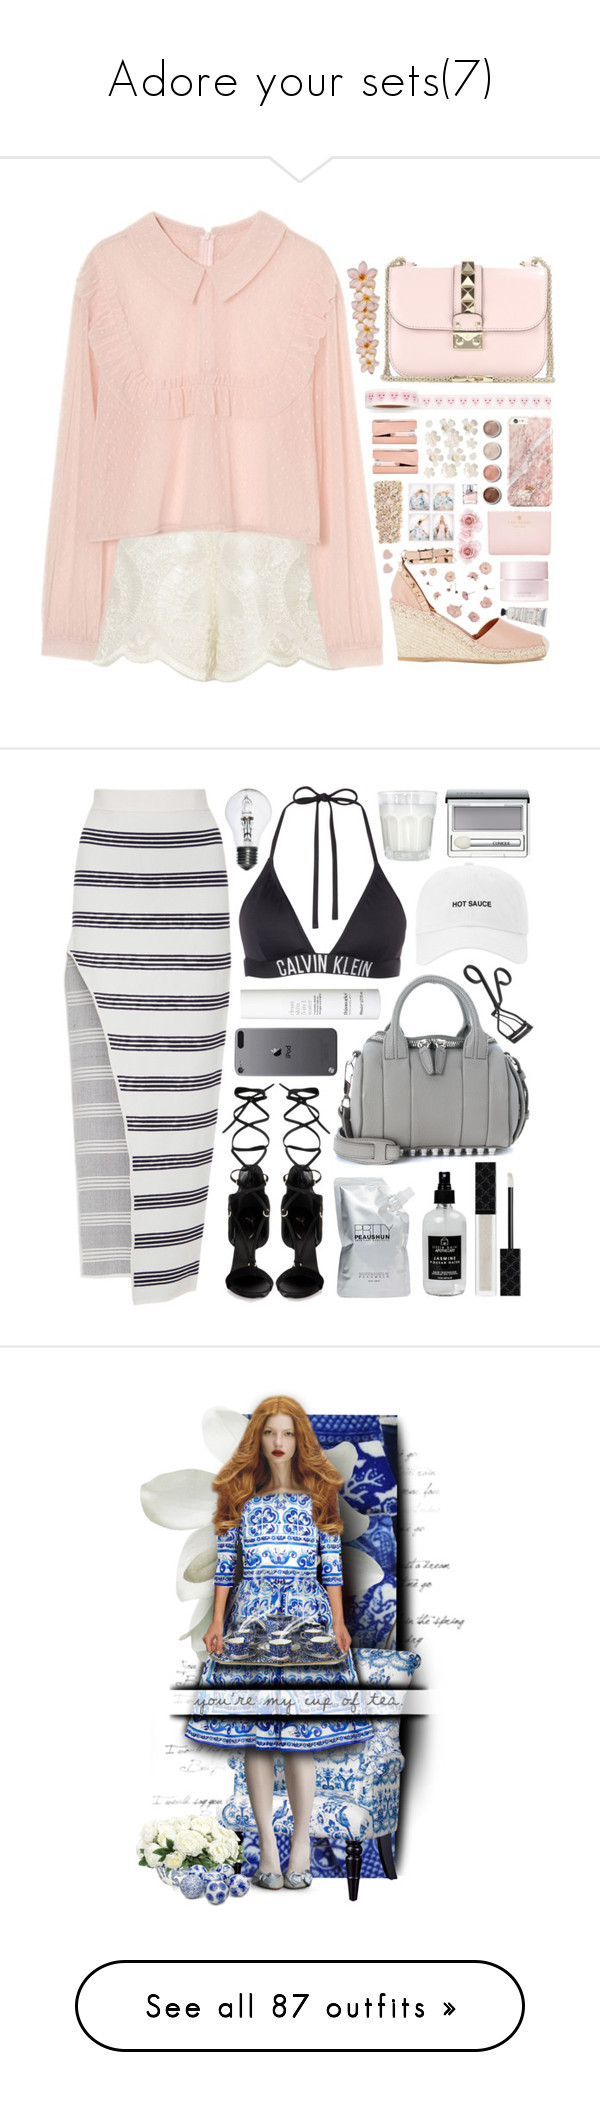 """""""Adore your sets(7)"""" by rainie-minnie ❤ liked on Polyvore featuring Alexis, Valentino, Terre Mère, Kate Spade, SUQQU, Tom Dixon, HUGO, Nasty Gal, Pier 1 Imports and Alice McCall"""